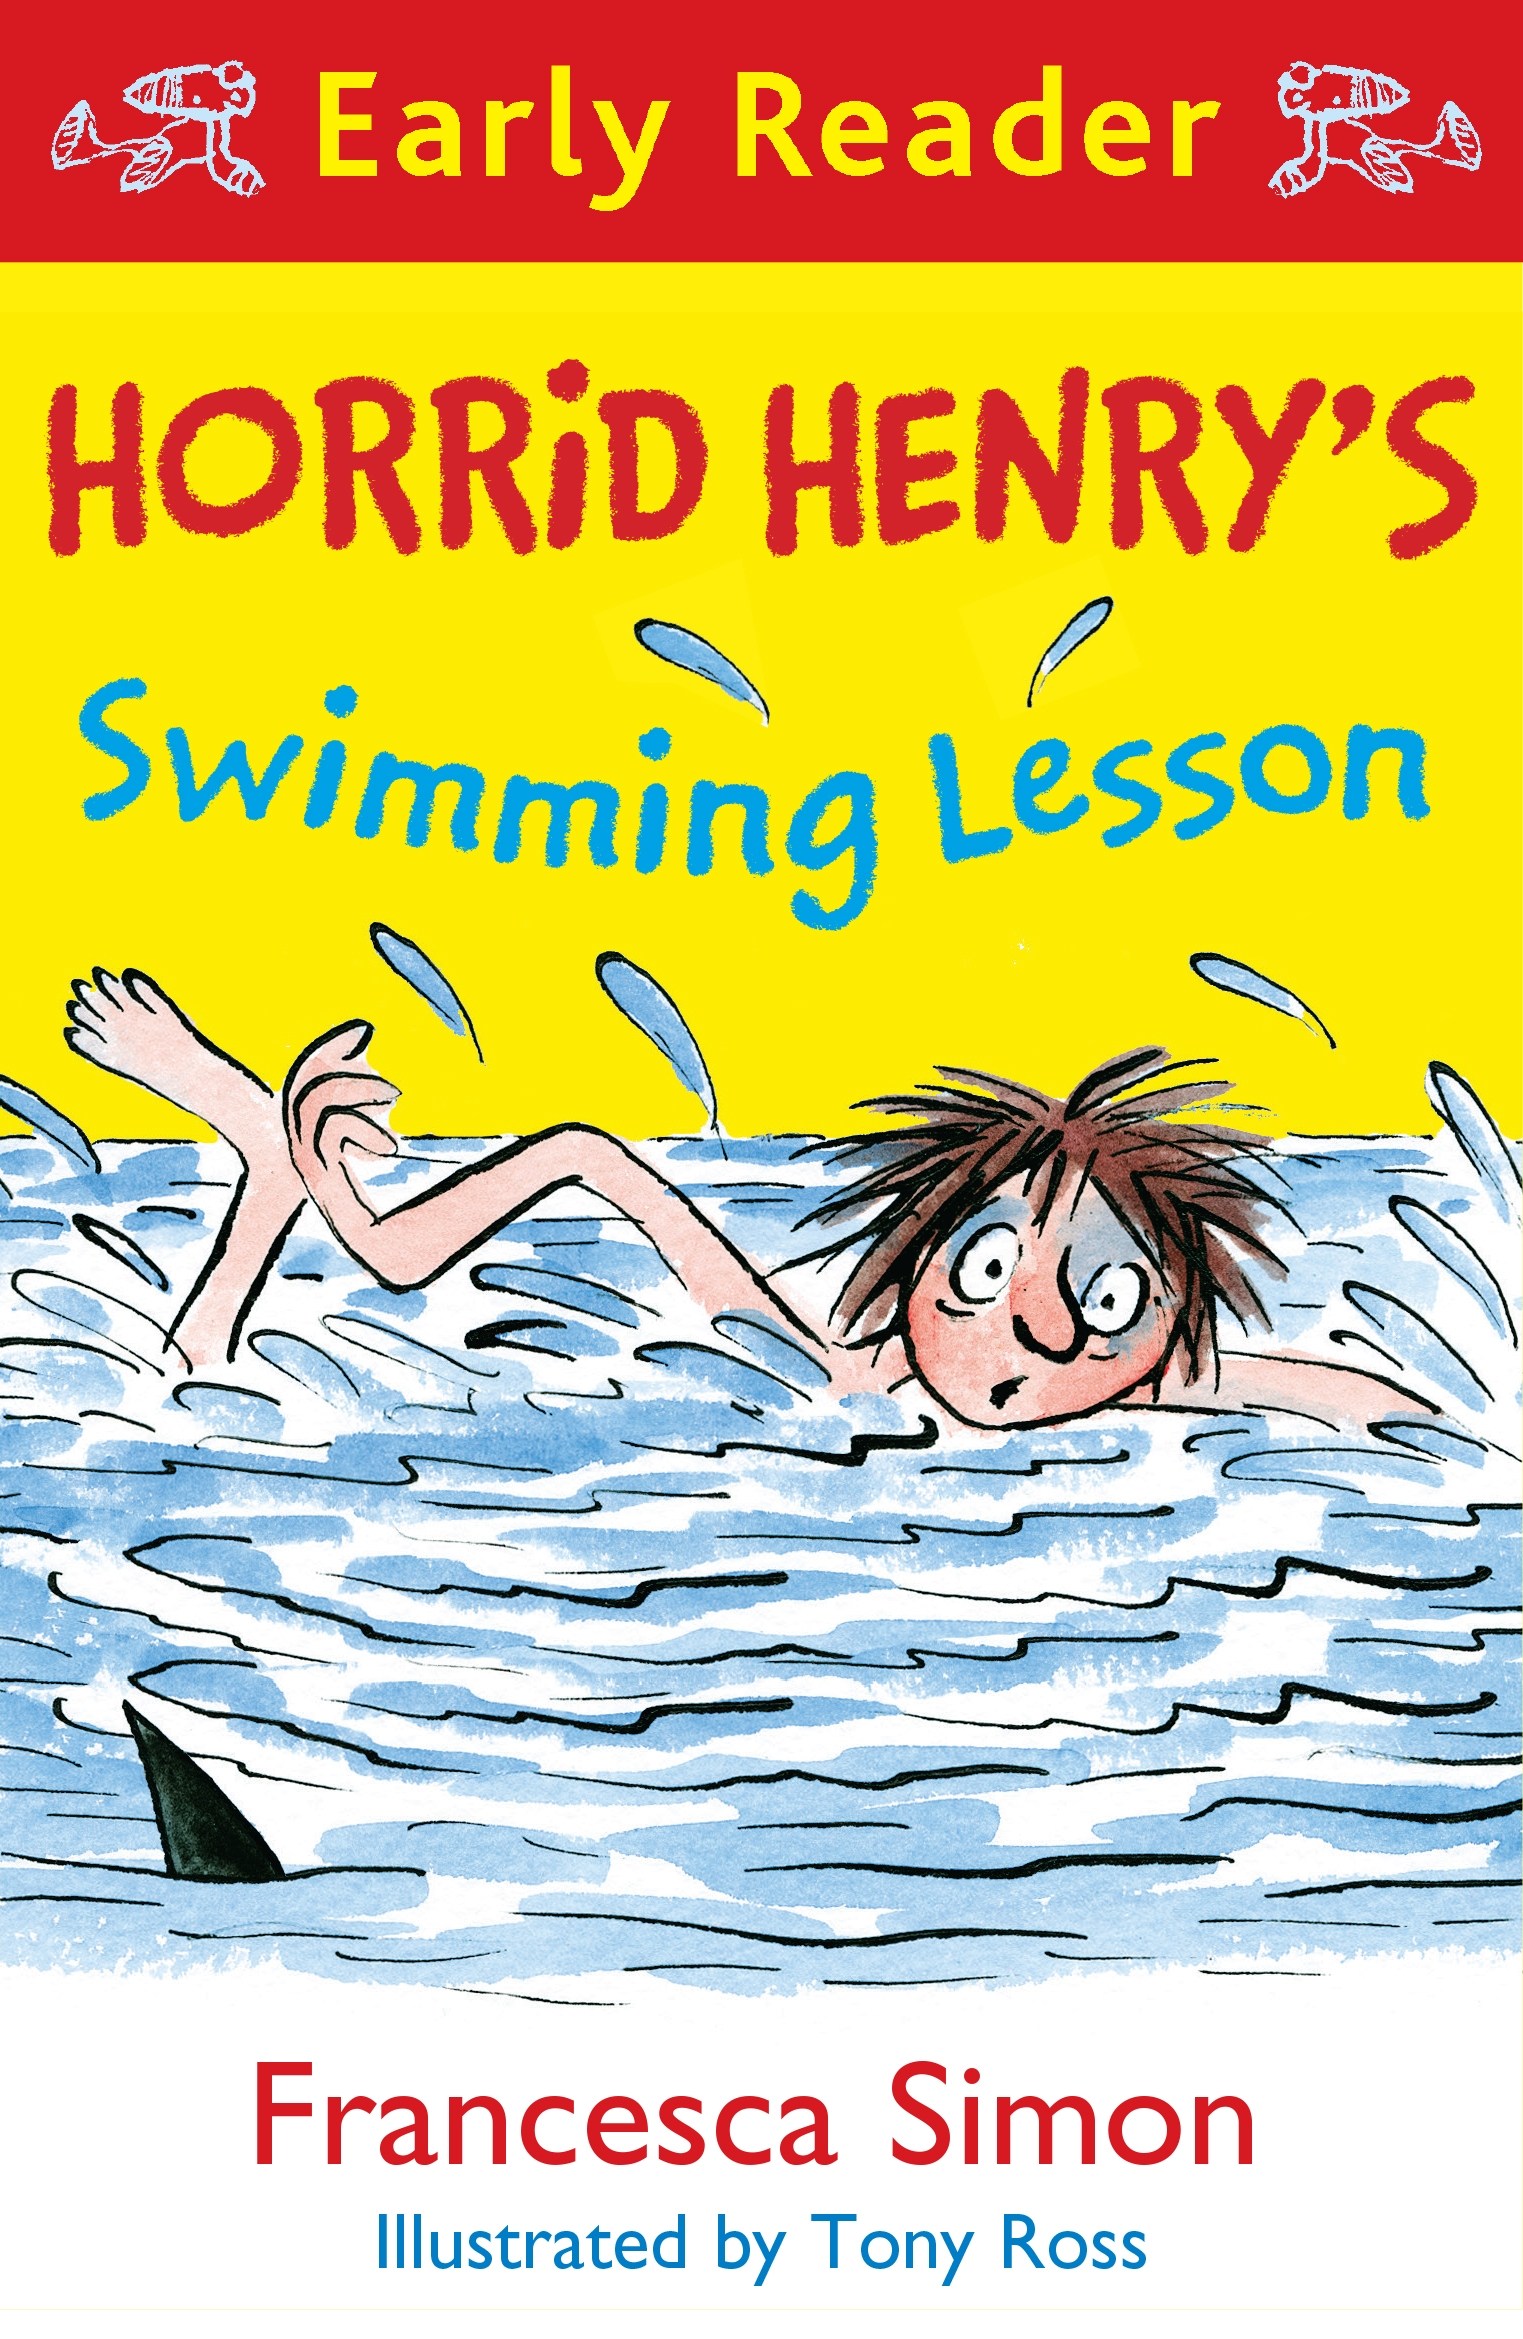 Horrid Henry's Swimming Lesson (Early Reader)